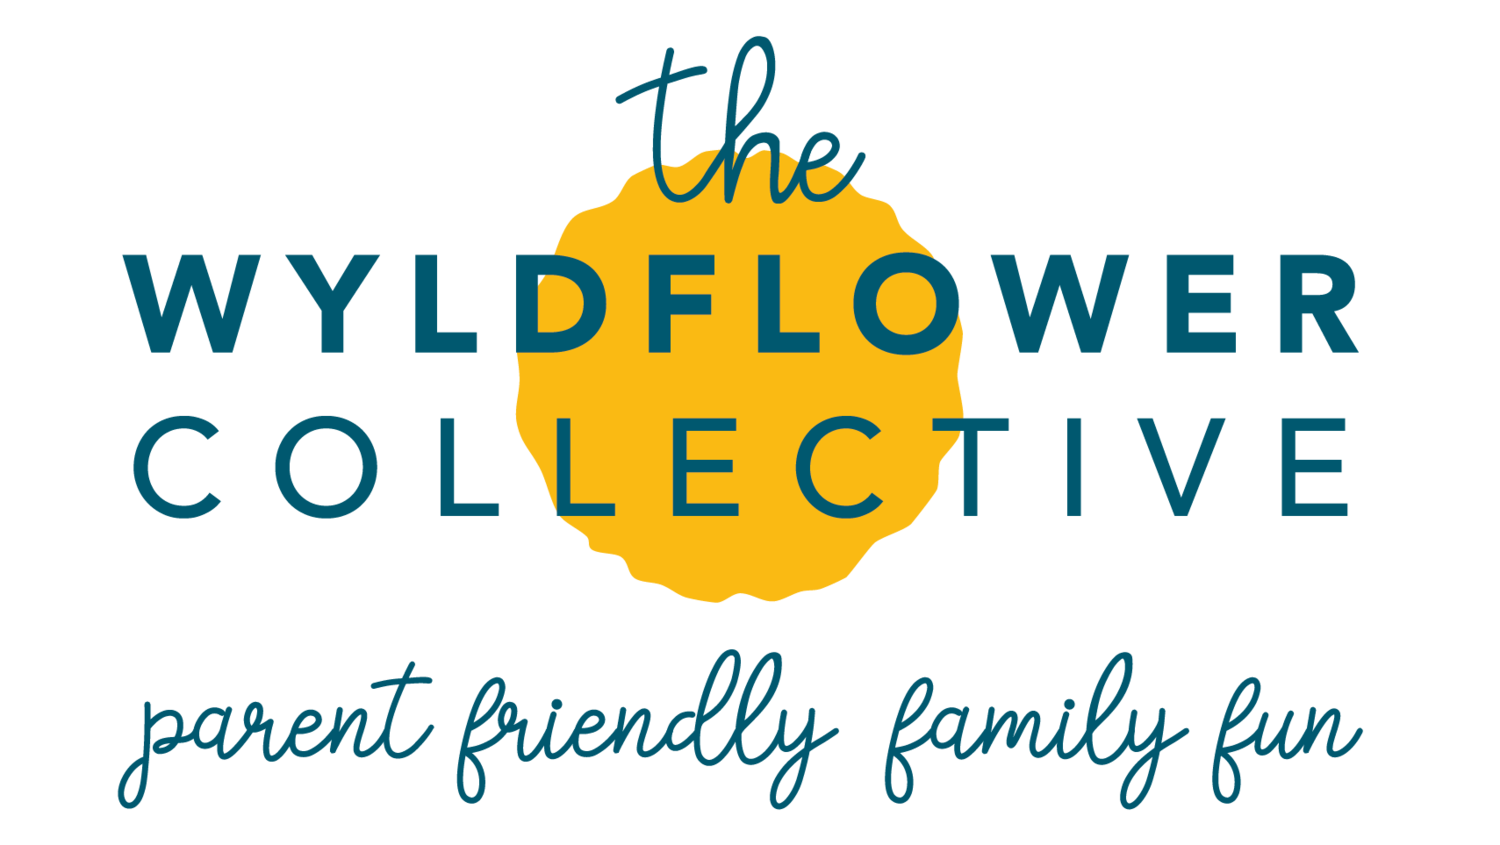 The Wyldflower Collective